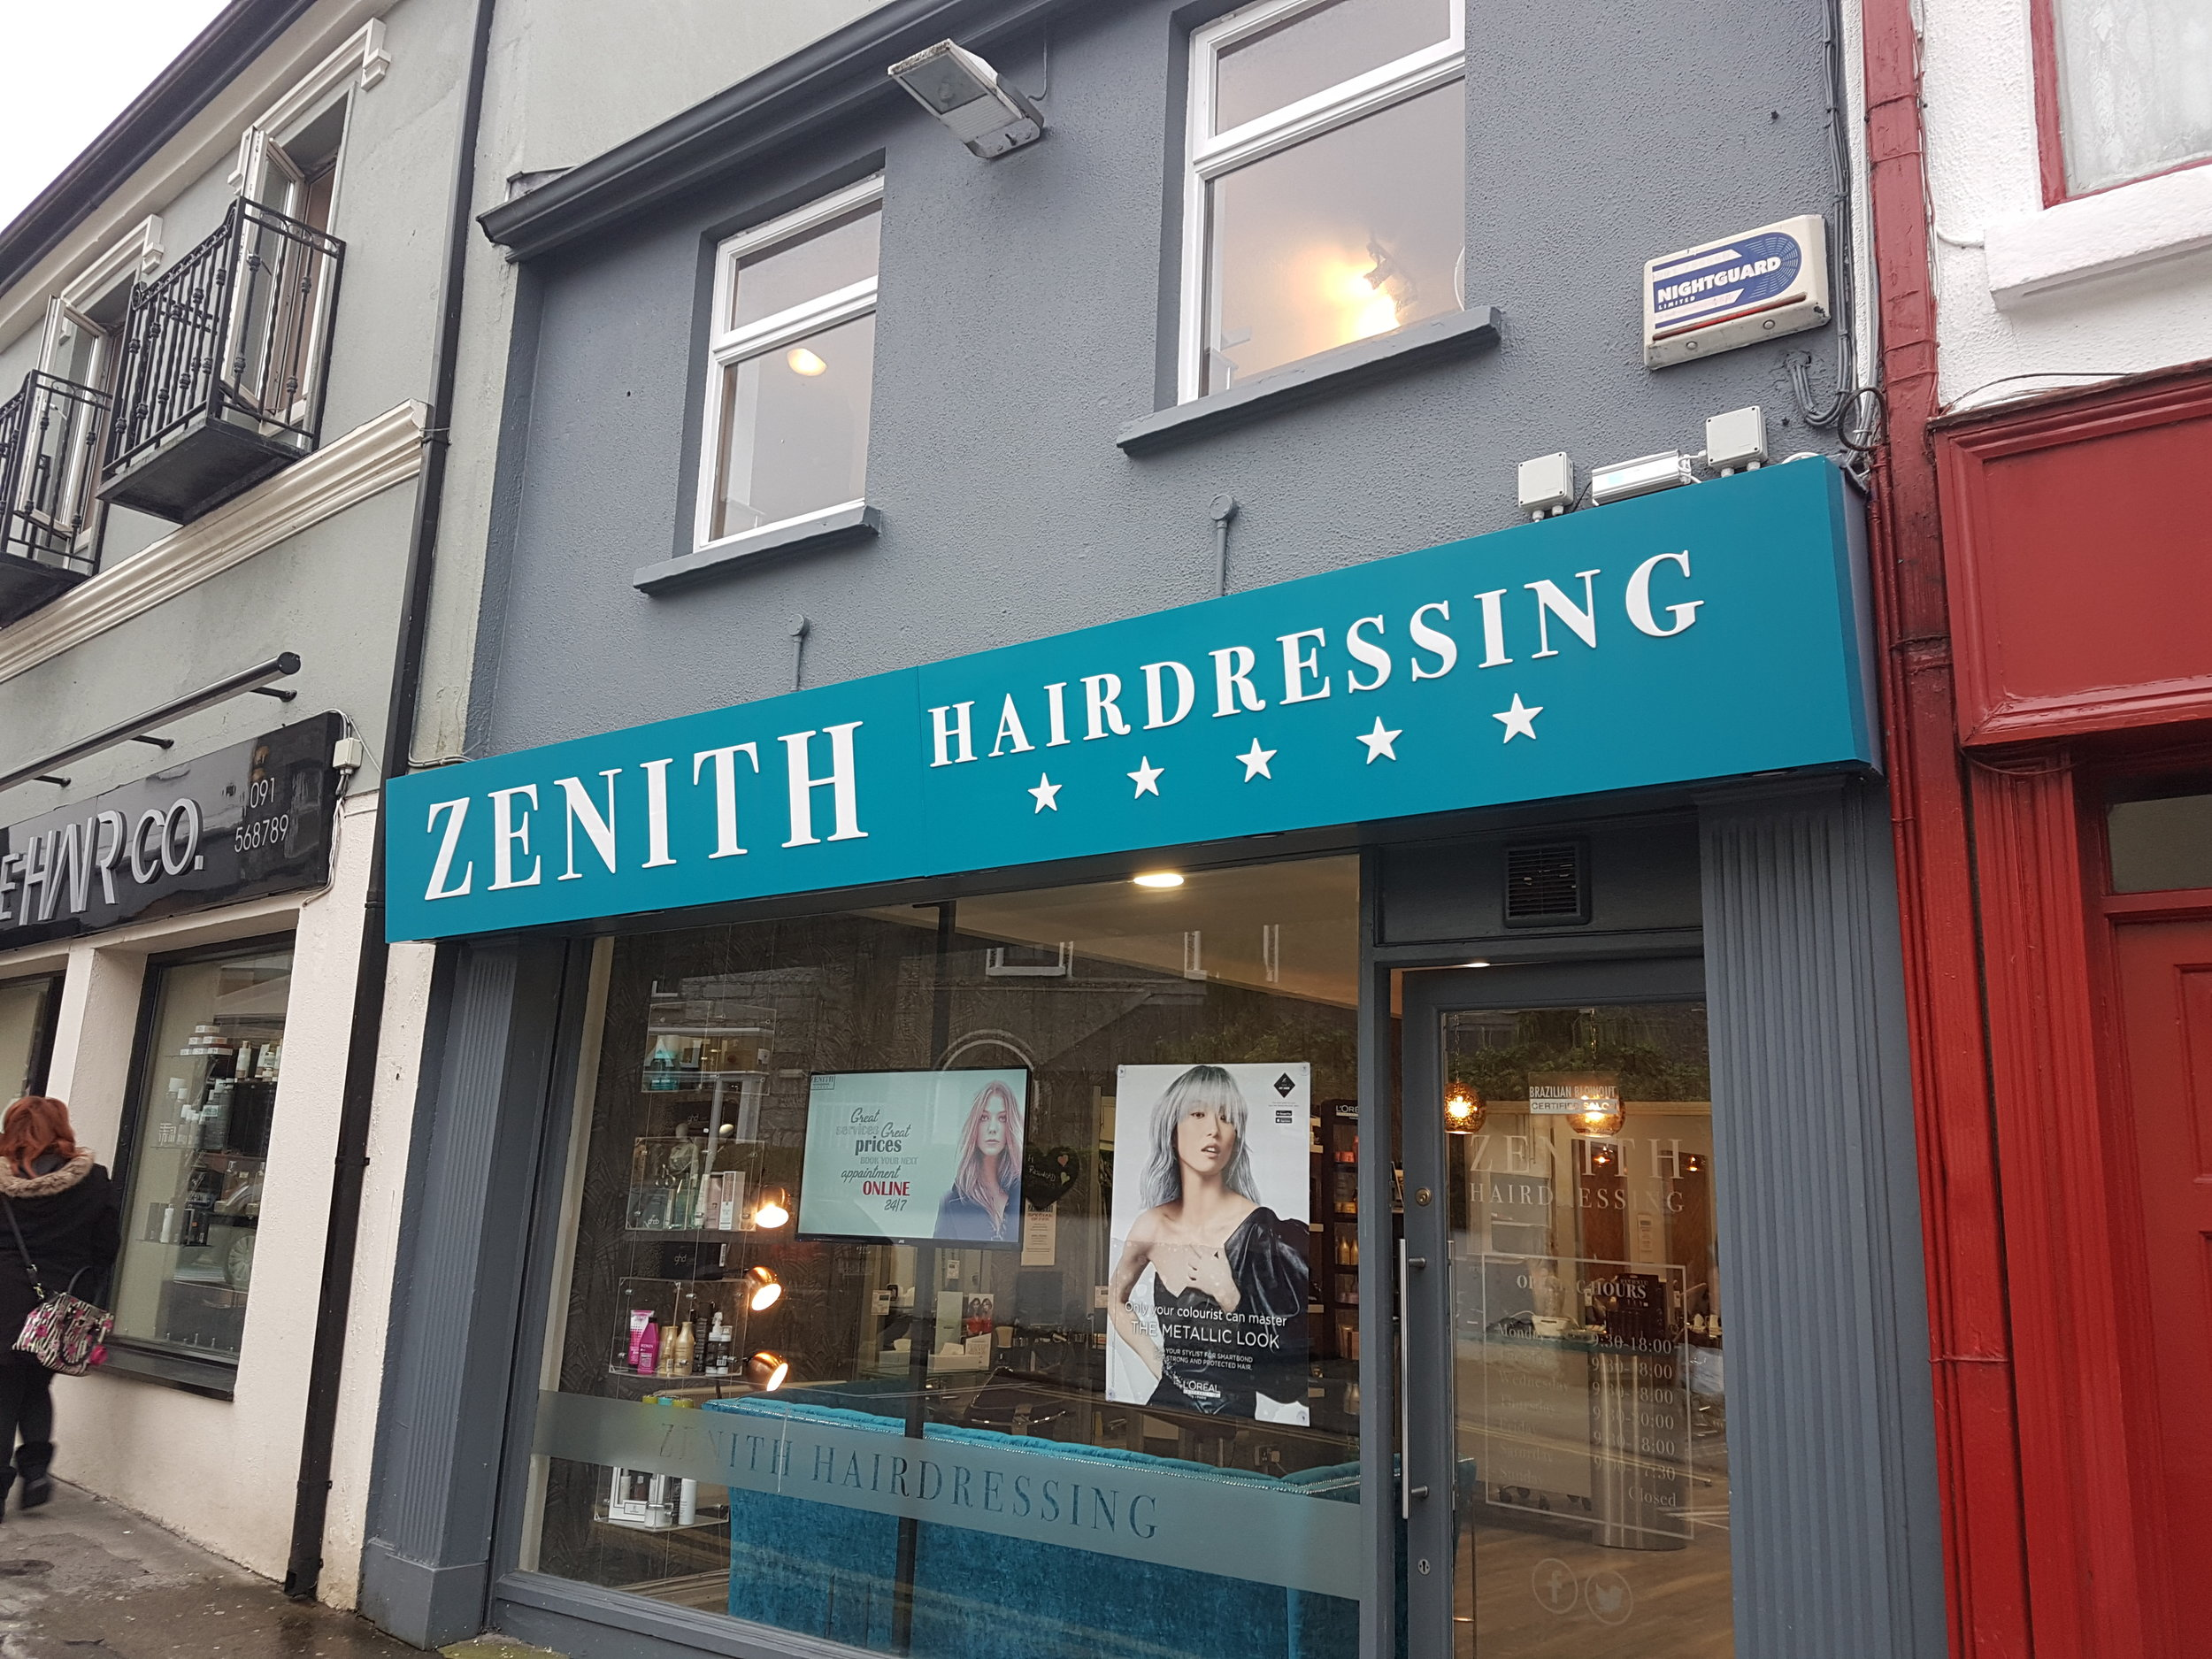 Zenith Hairdressing, Eyre St., Galway